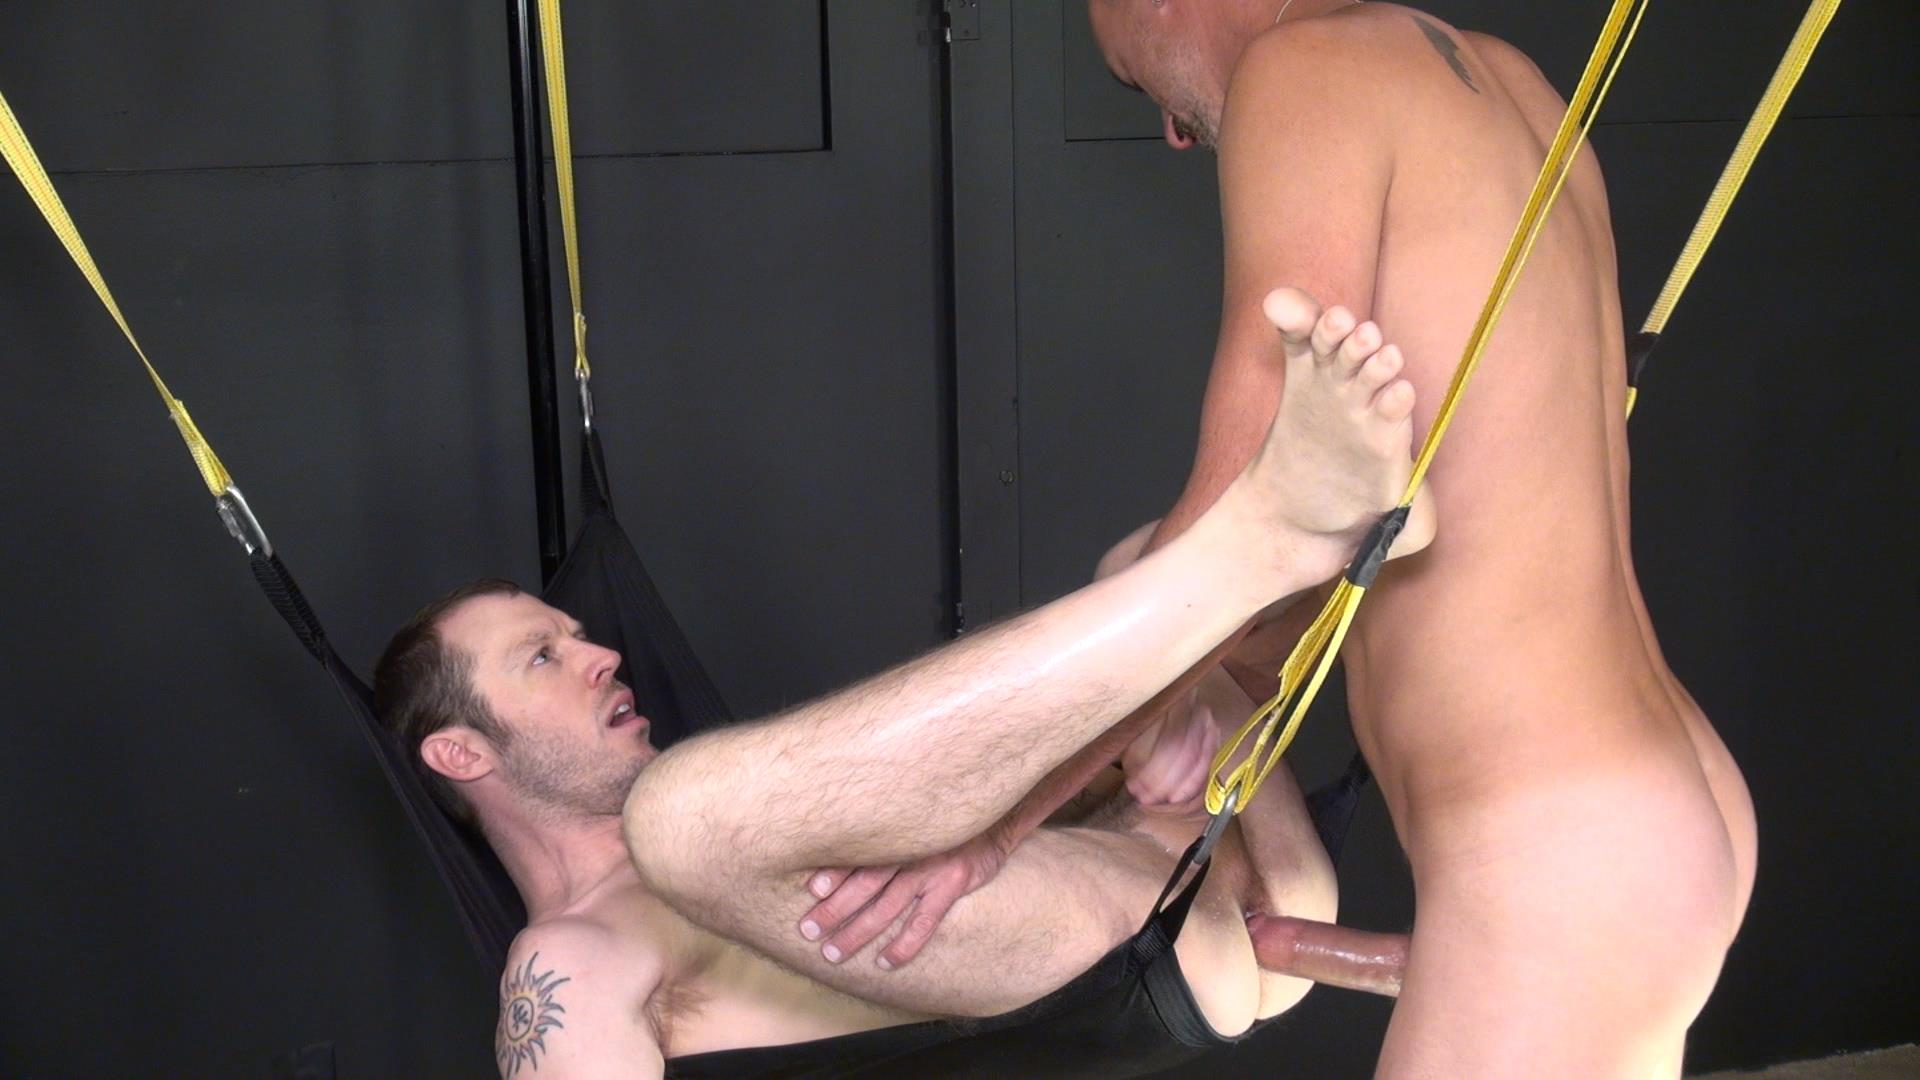 Raw-and-Rough-Blake-Dawson-and-Super-Steve-Horse-Cock-Bareback-Breeding-Amateur-Gay-Porn-05 Huge Cock Bareback Breeding A Tight Hole In A Sex Sling